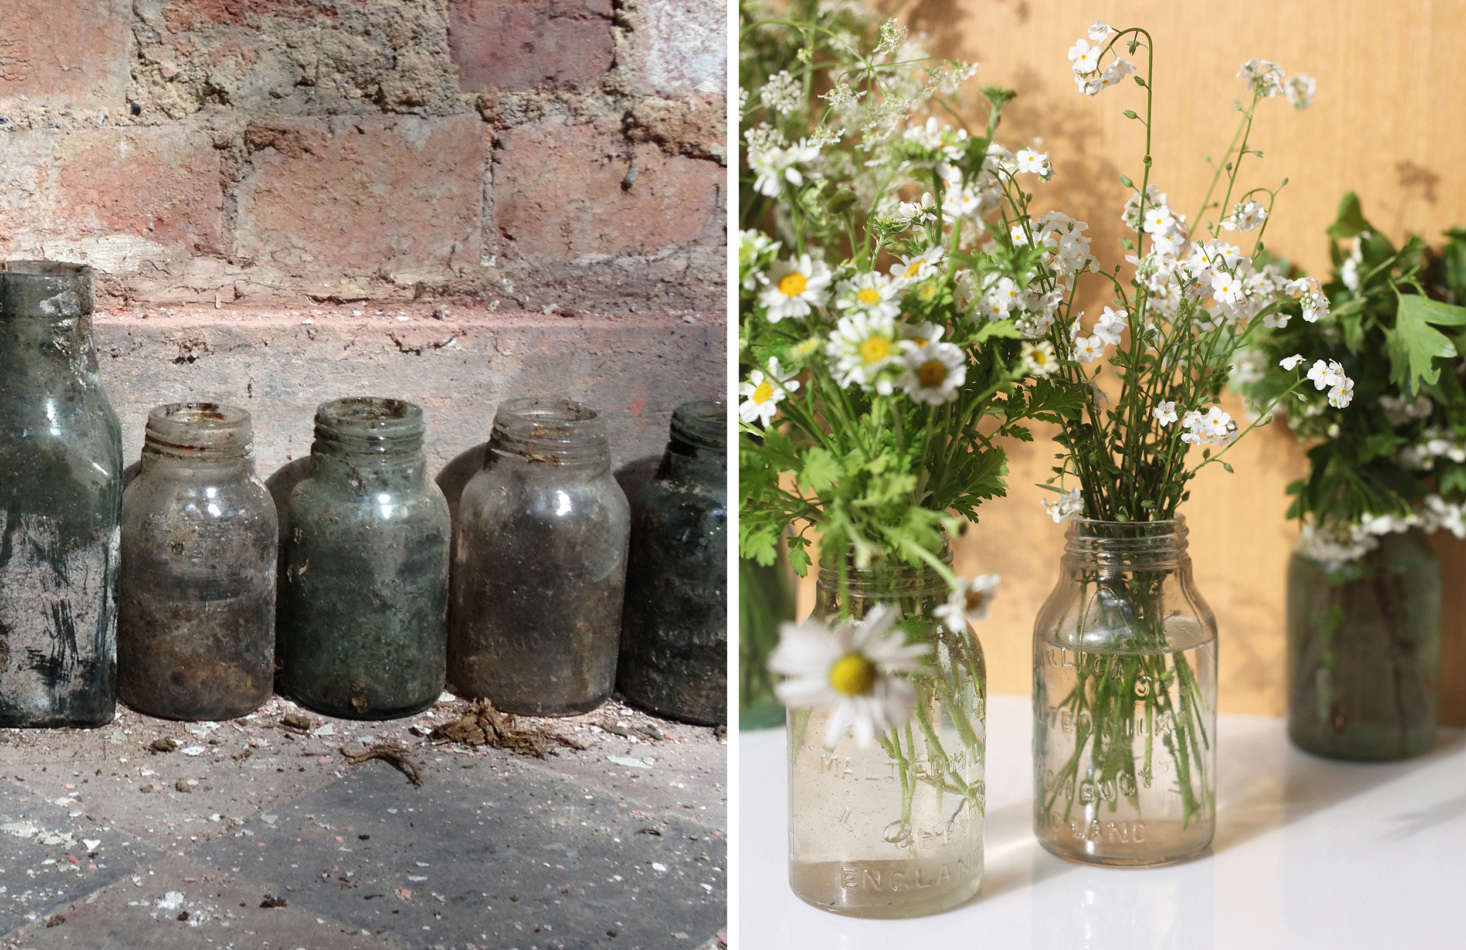 School milk bottles as found (L) and cleaned up (R). Photographs by Sandy Suffield.